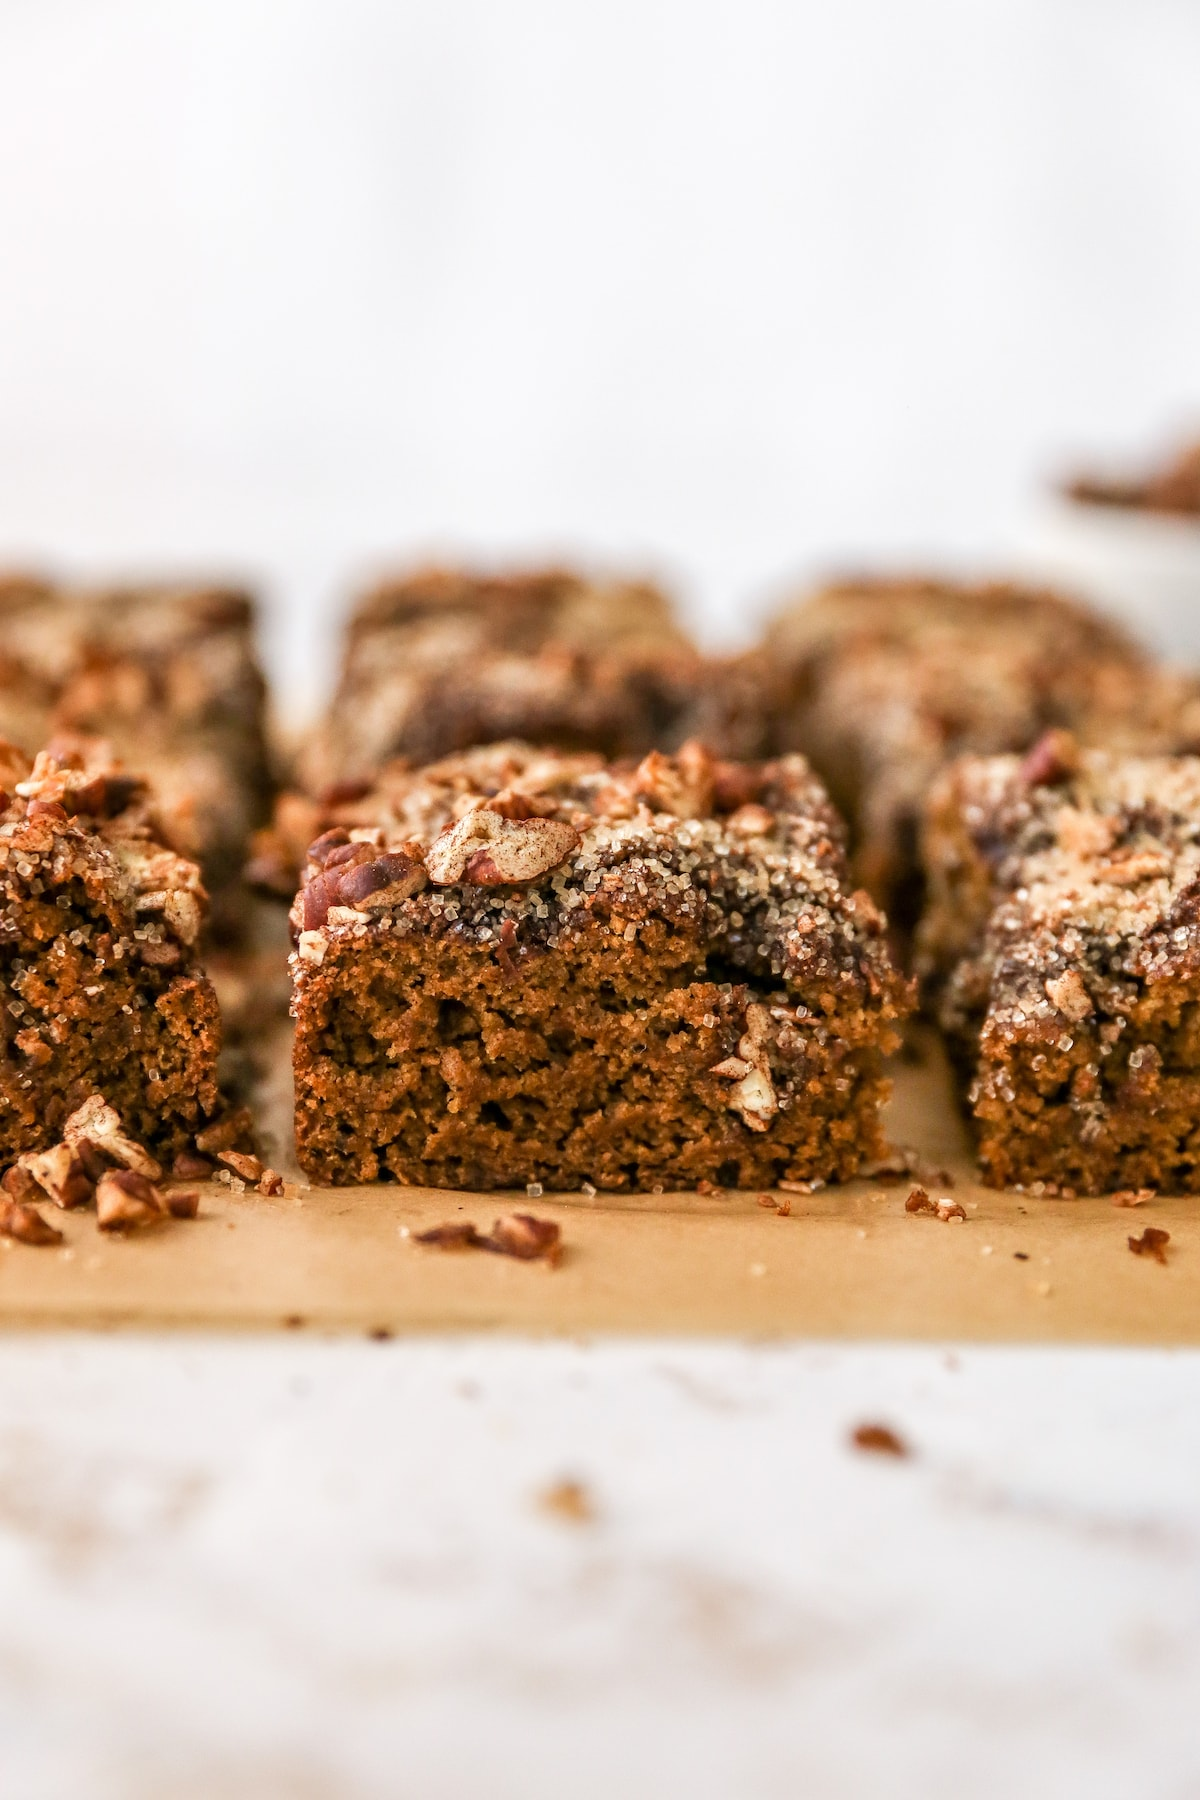 Slices of coffee cake topped with sugar pecan streusel.